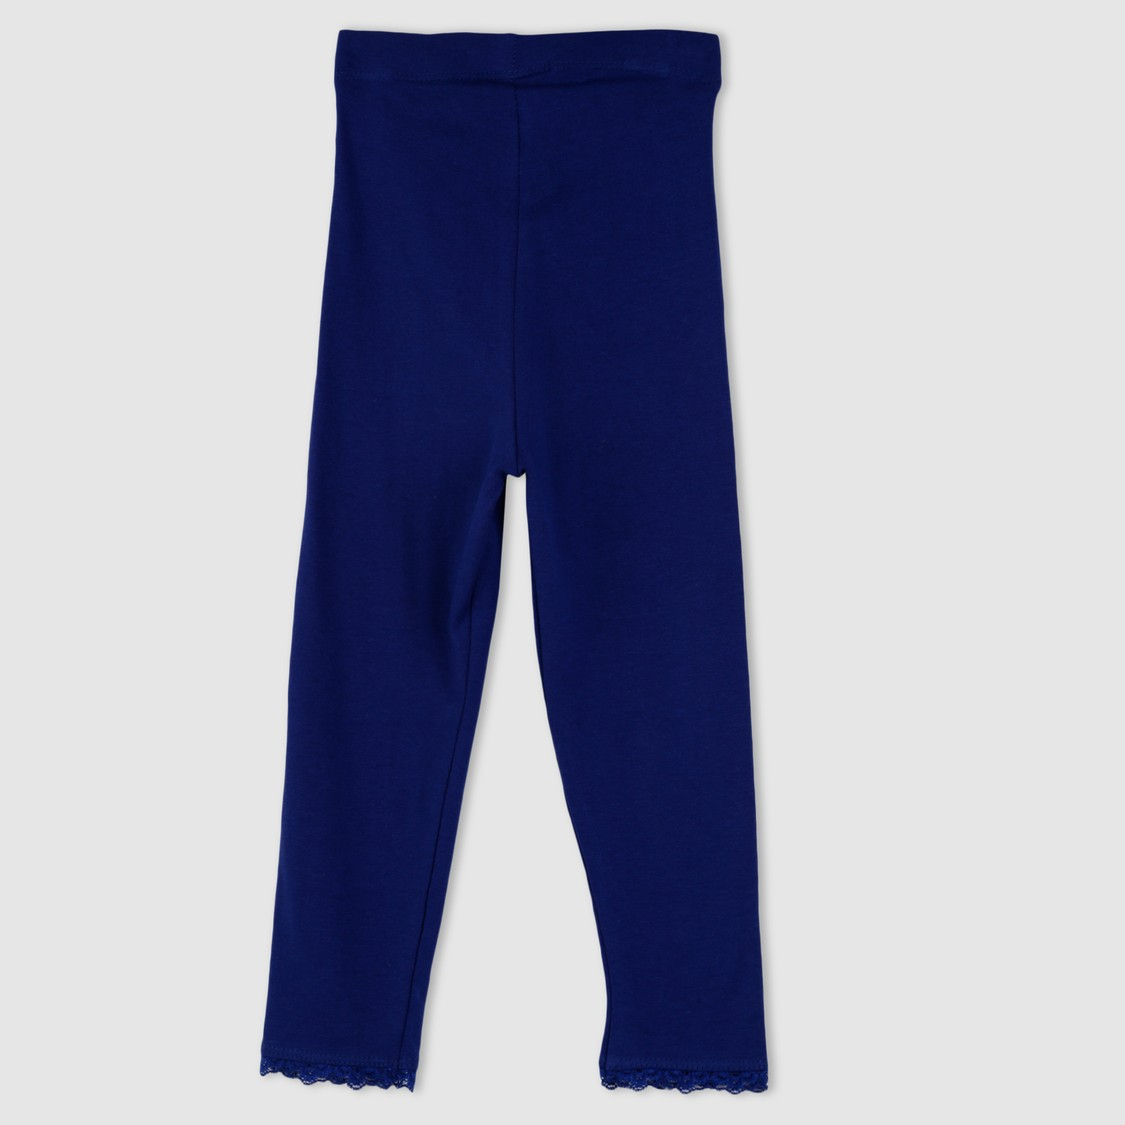 Full Length Leggings with Lace Trims